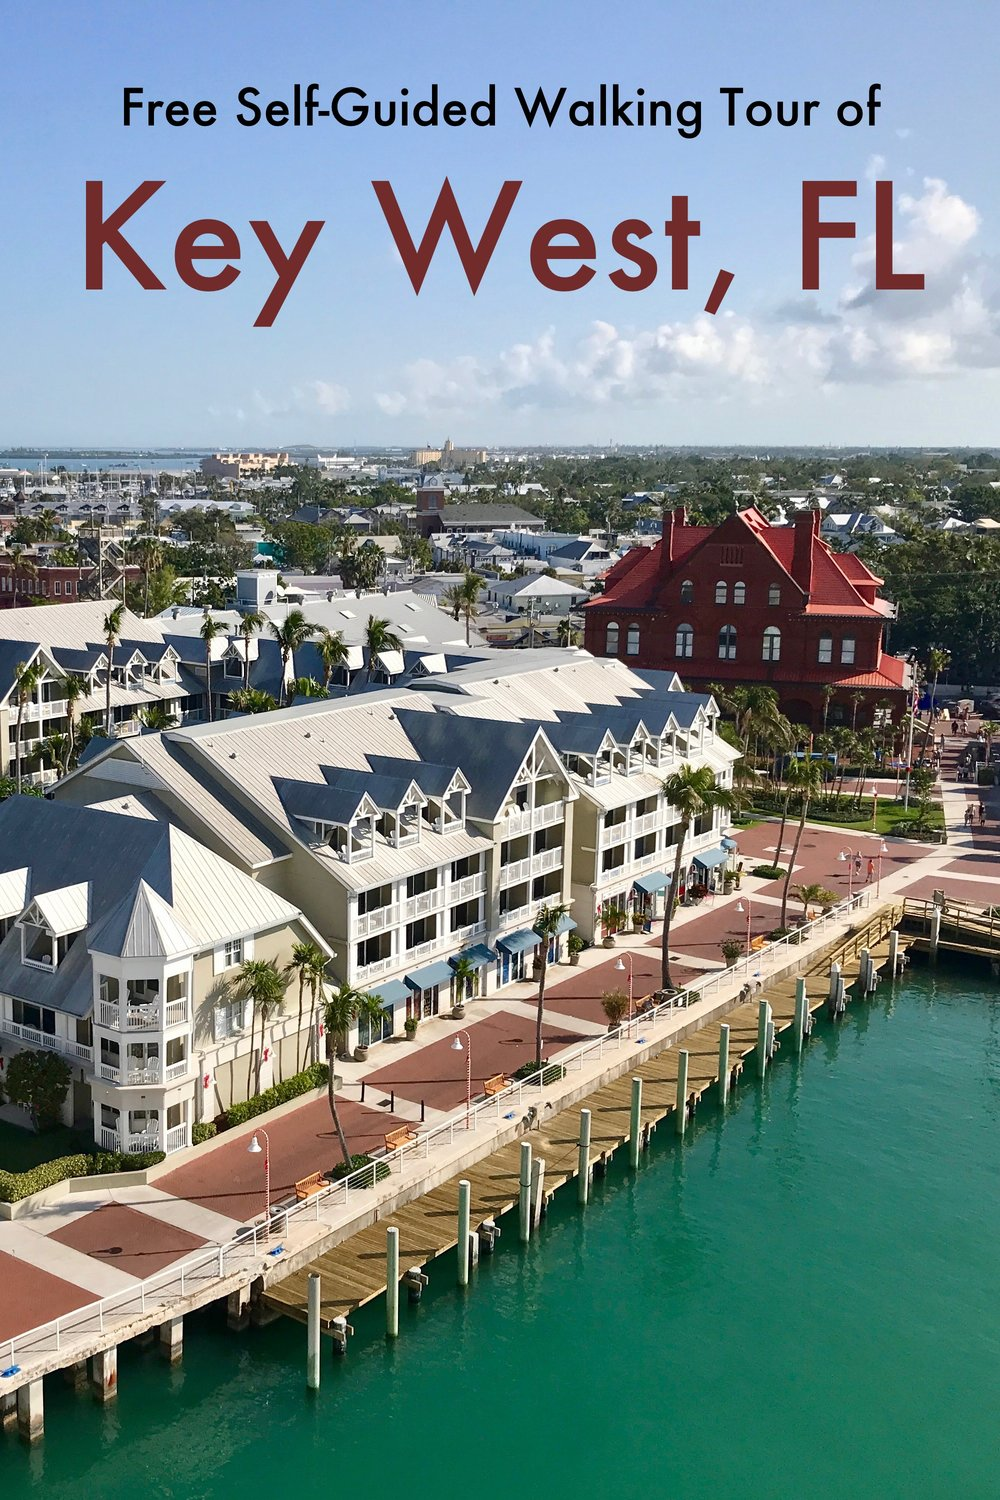 Free Self-Guided Walking Tour of Key West, Florida.  The island of Key West is easily walkable and packed with sights.  #keywest #florida #unitedstates #travel #cruise #caribbean #walking